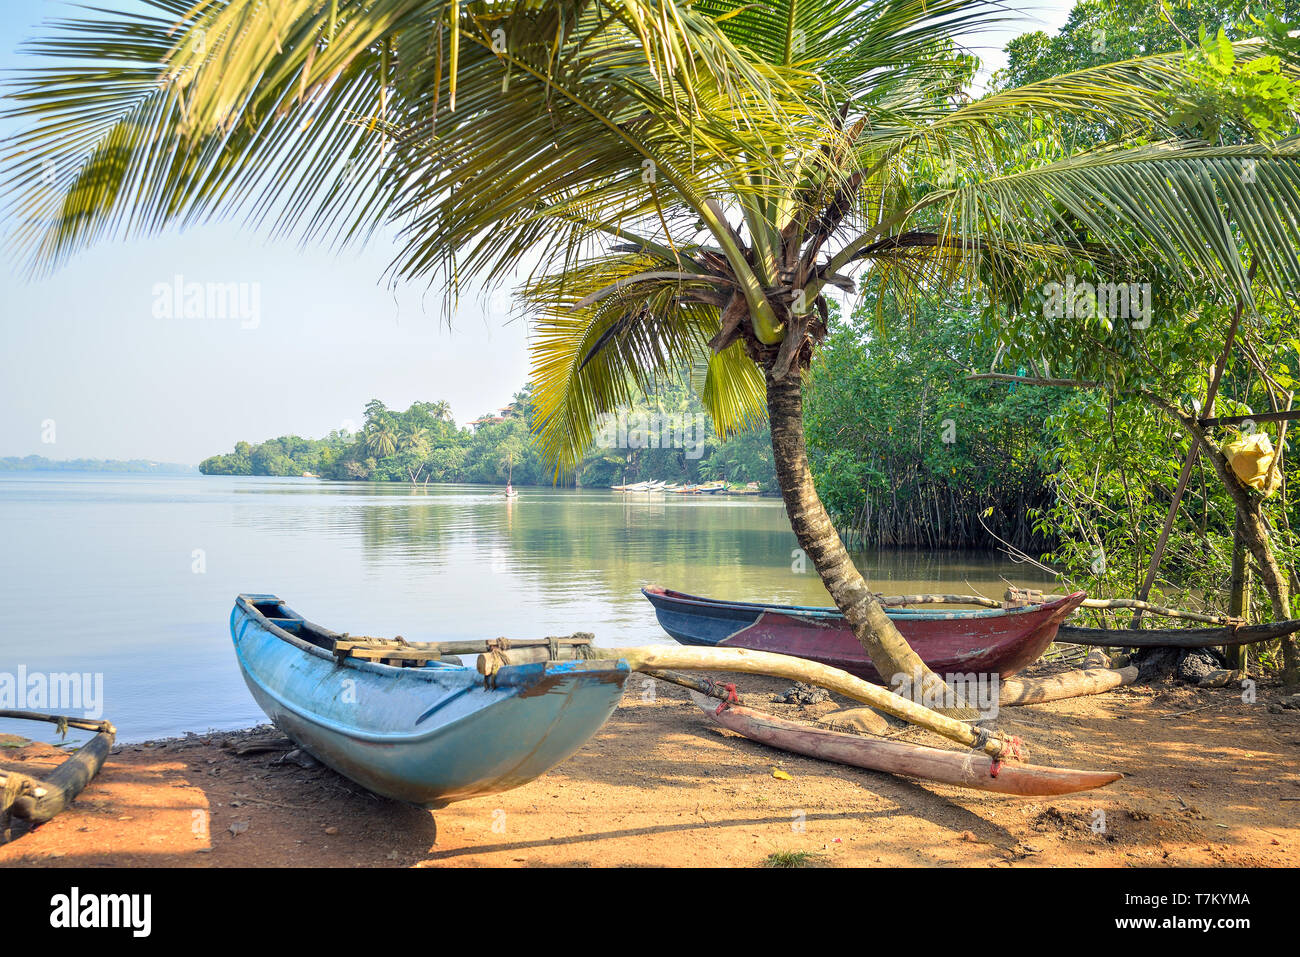 fishing boats on the lake in the jungles of Sri Lanka Stock Photo